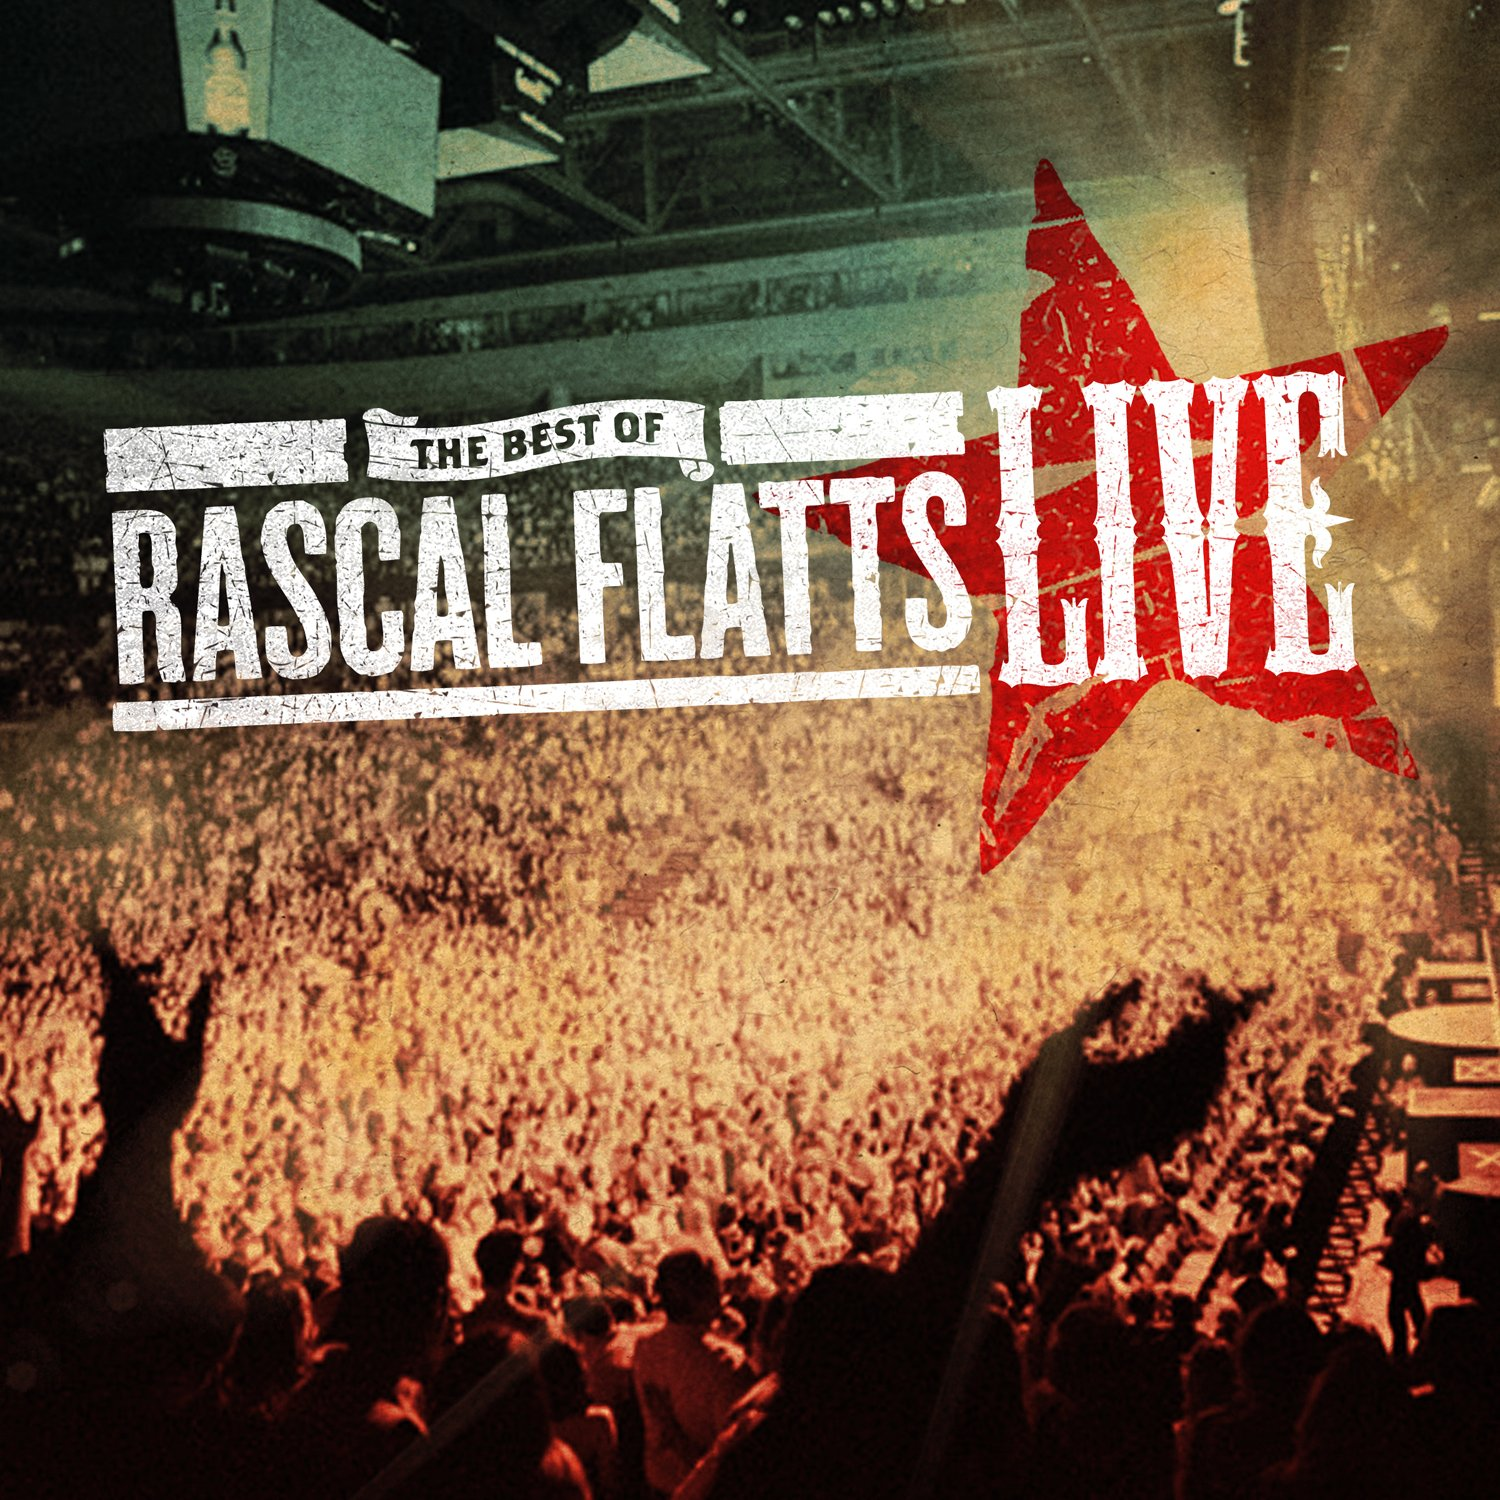 Rascal Flatts - The Best of Rascal Flatts LIVE - Amazon.com Music